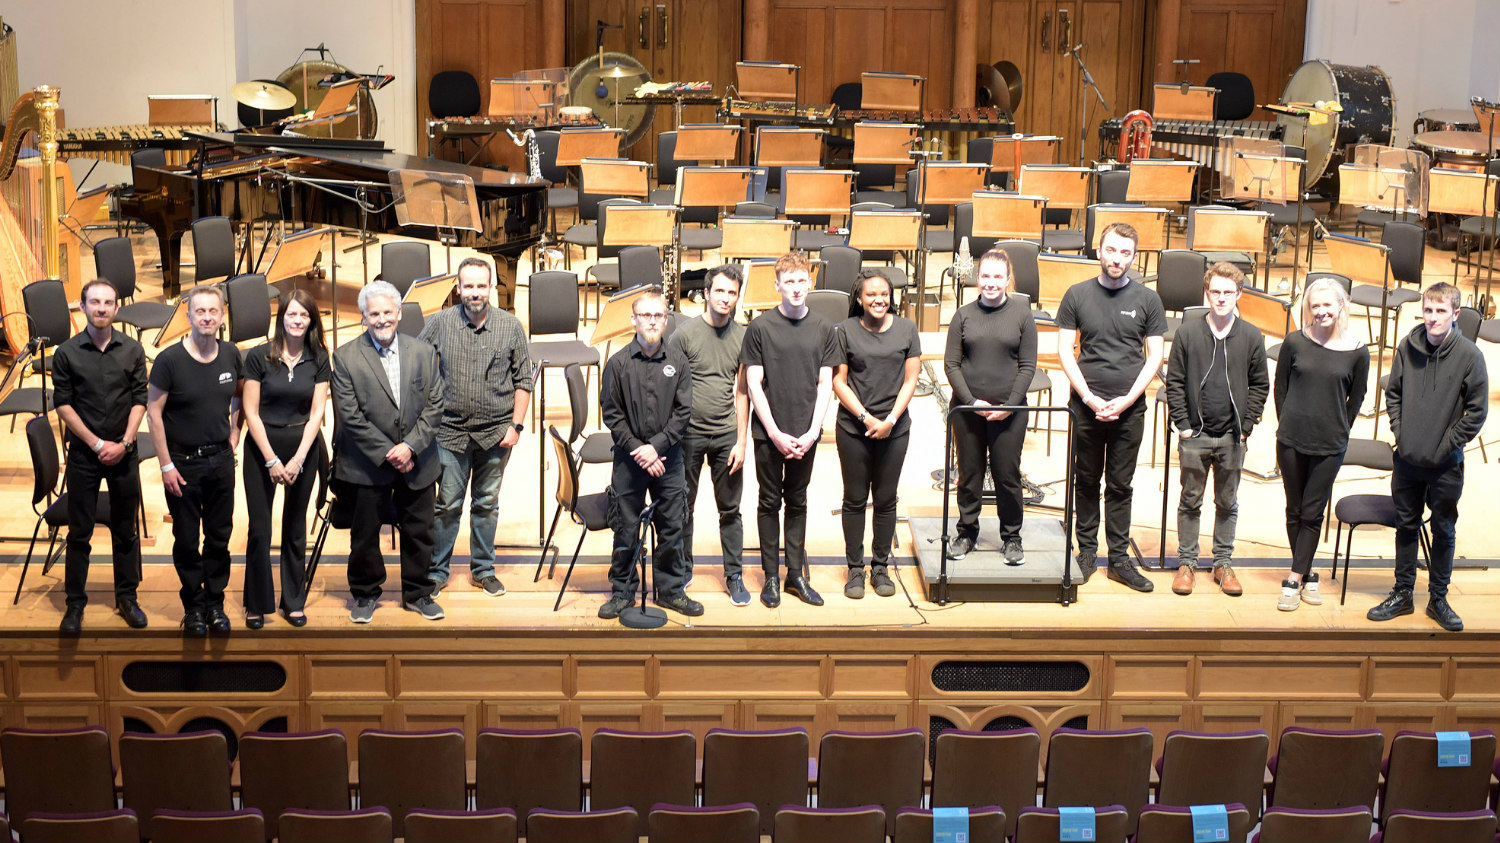 Music degree students work with Royal Philharmonic Orchestra at Cadogan Hall